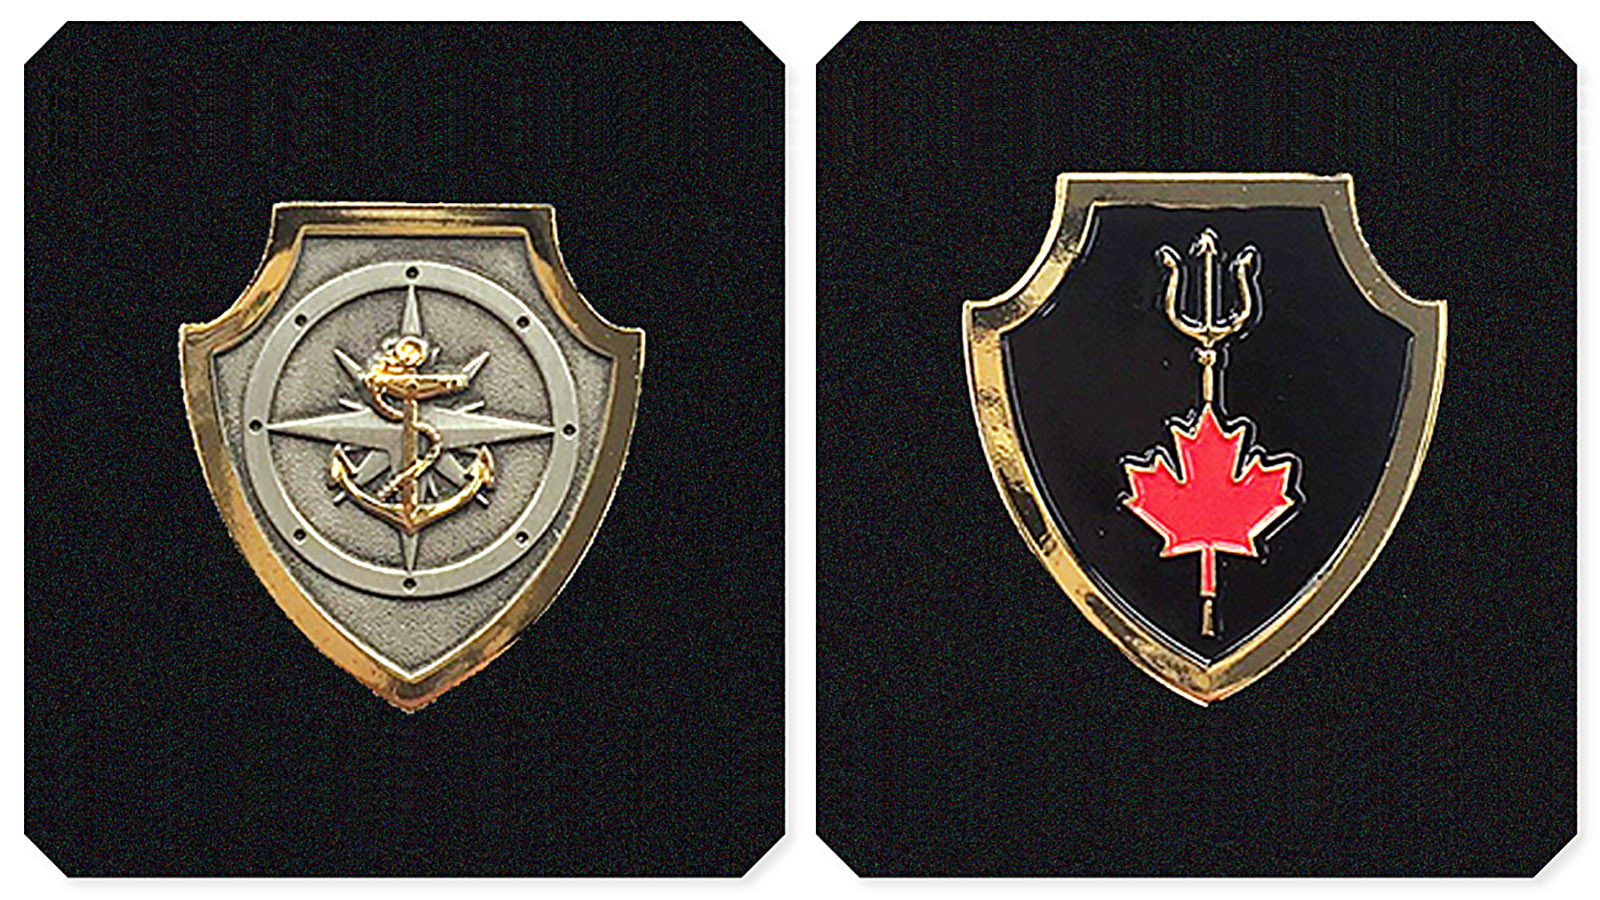 slide - RCN Naval Boarding Party badges